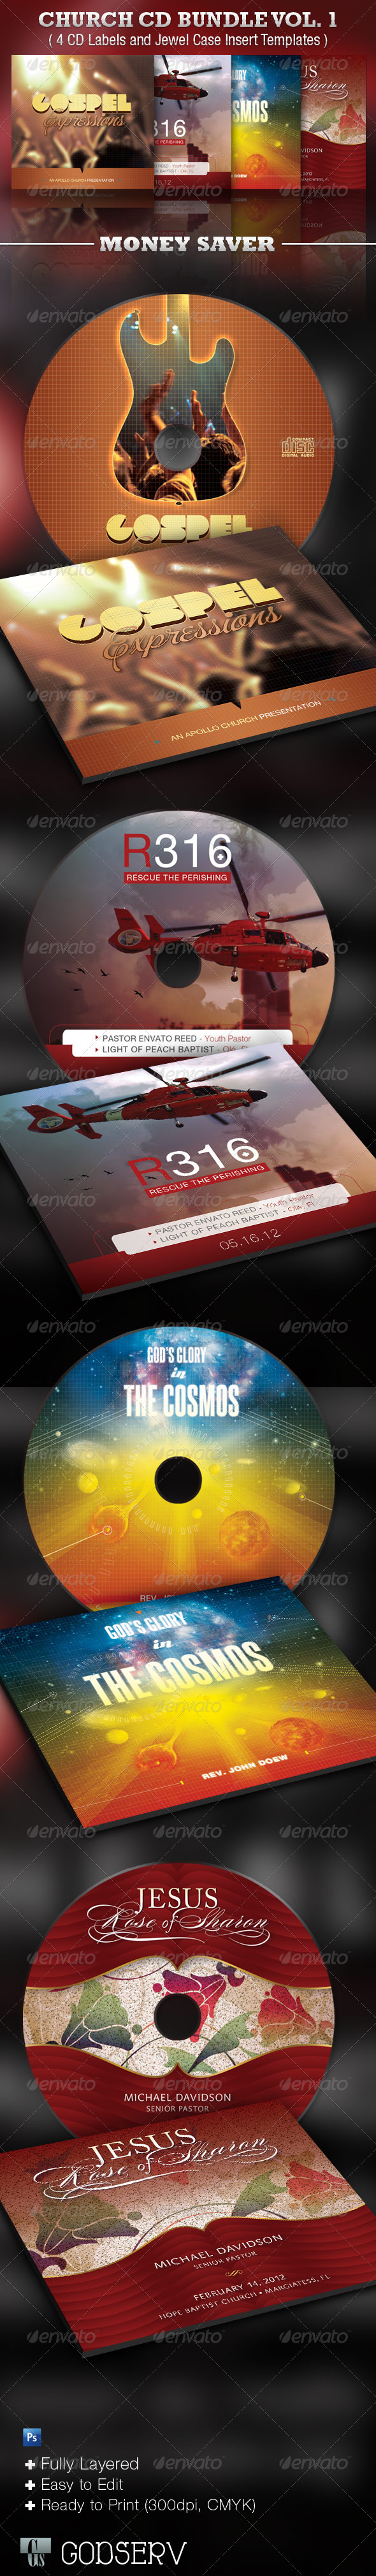 The Church CD Template Bundle Vol. 1 - CD & DVD artwork Print Templates